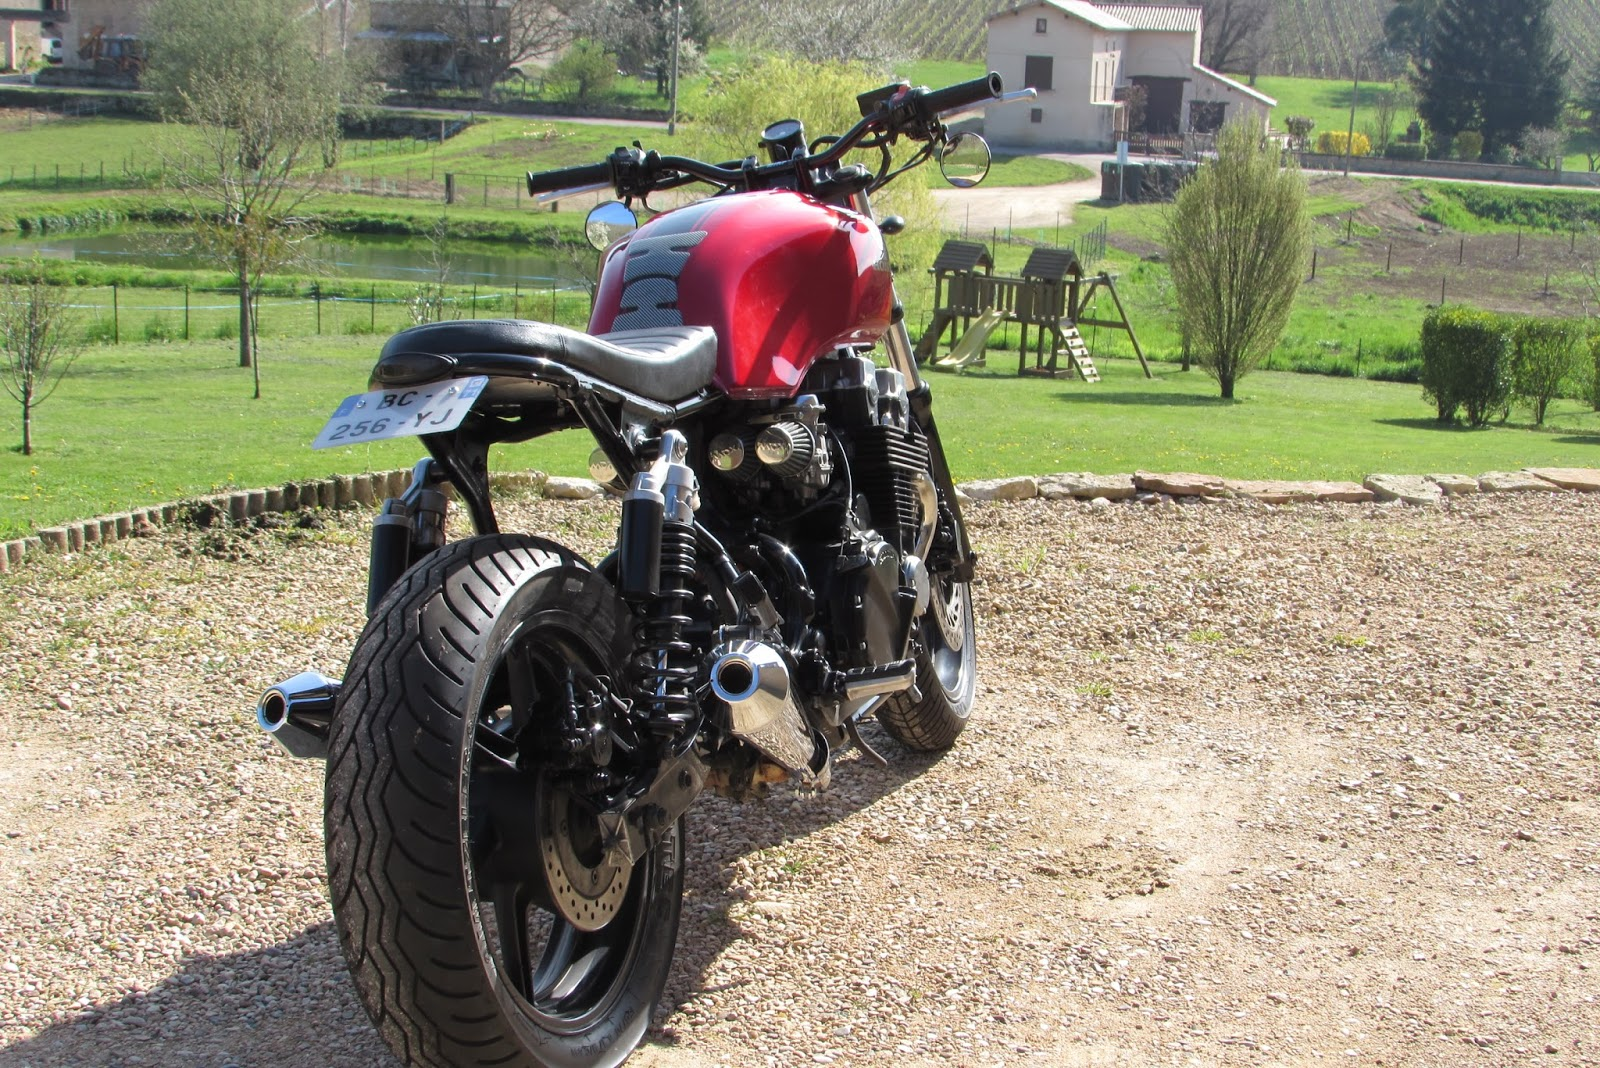 Boucle Arriere Cafe Racer Seven Fifty